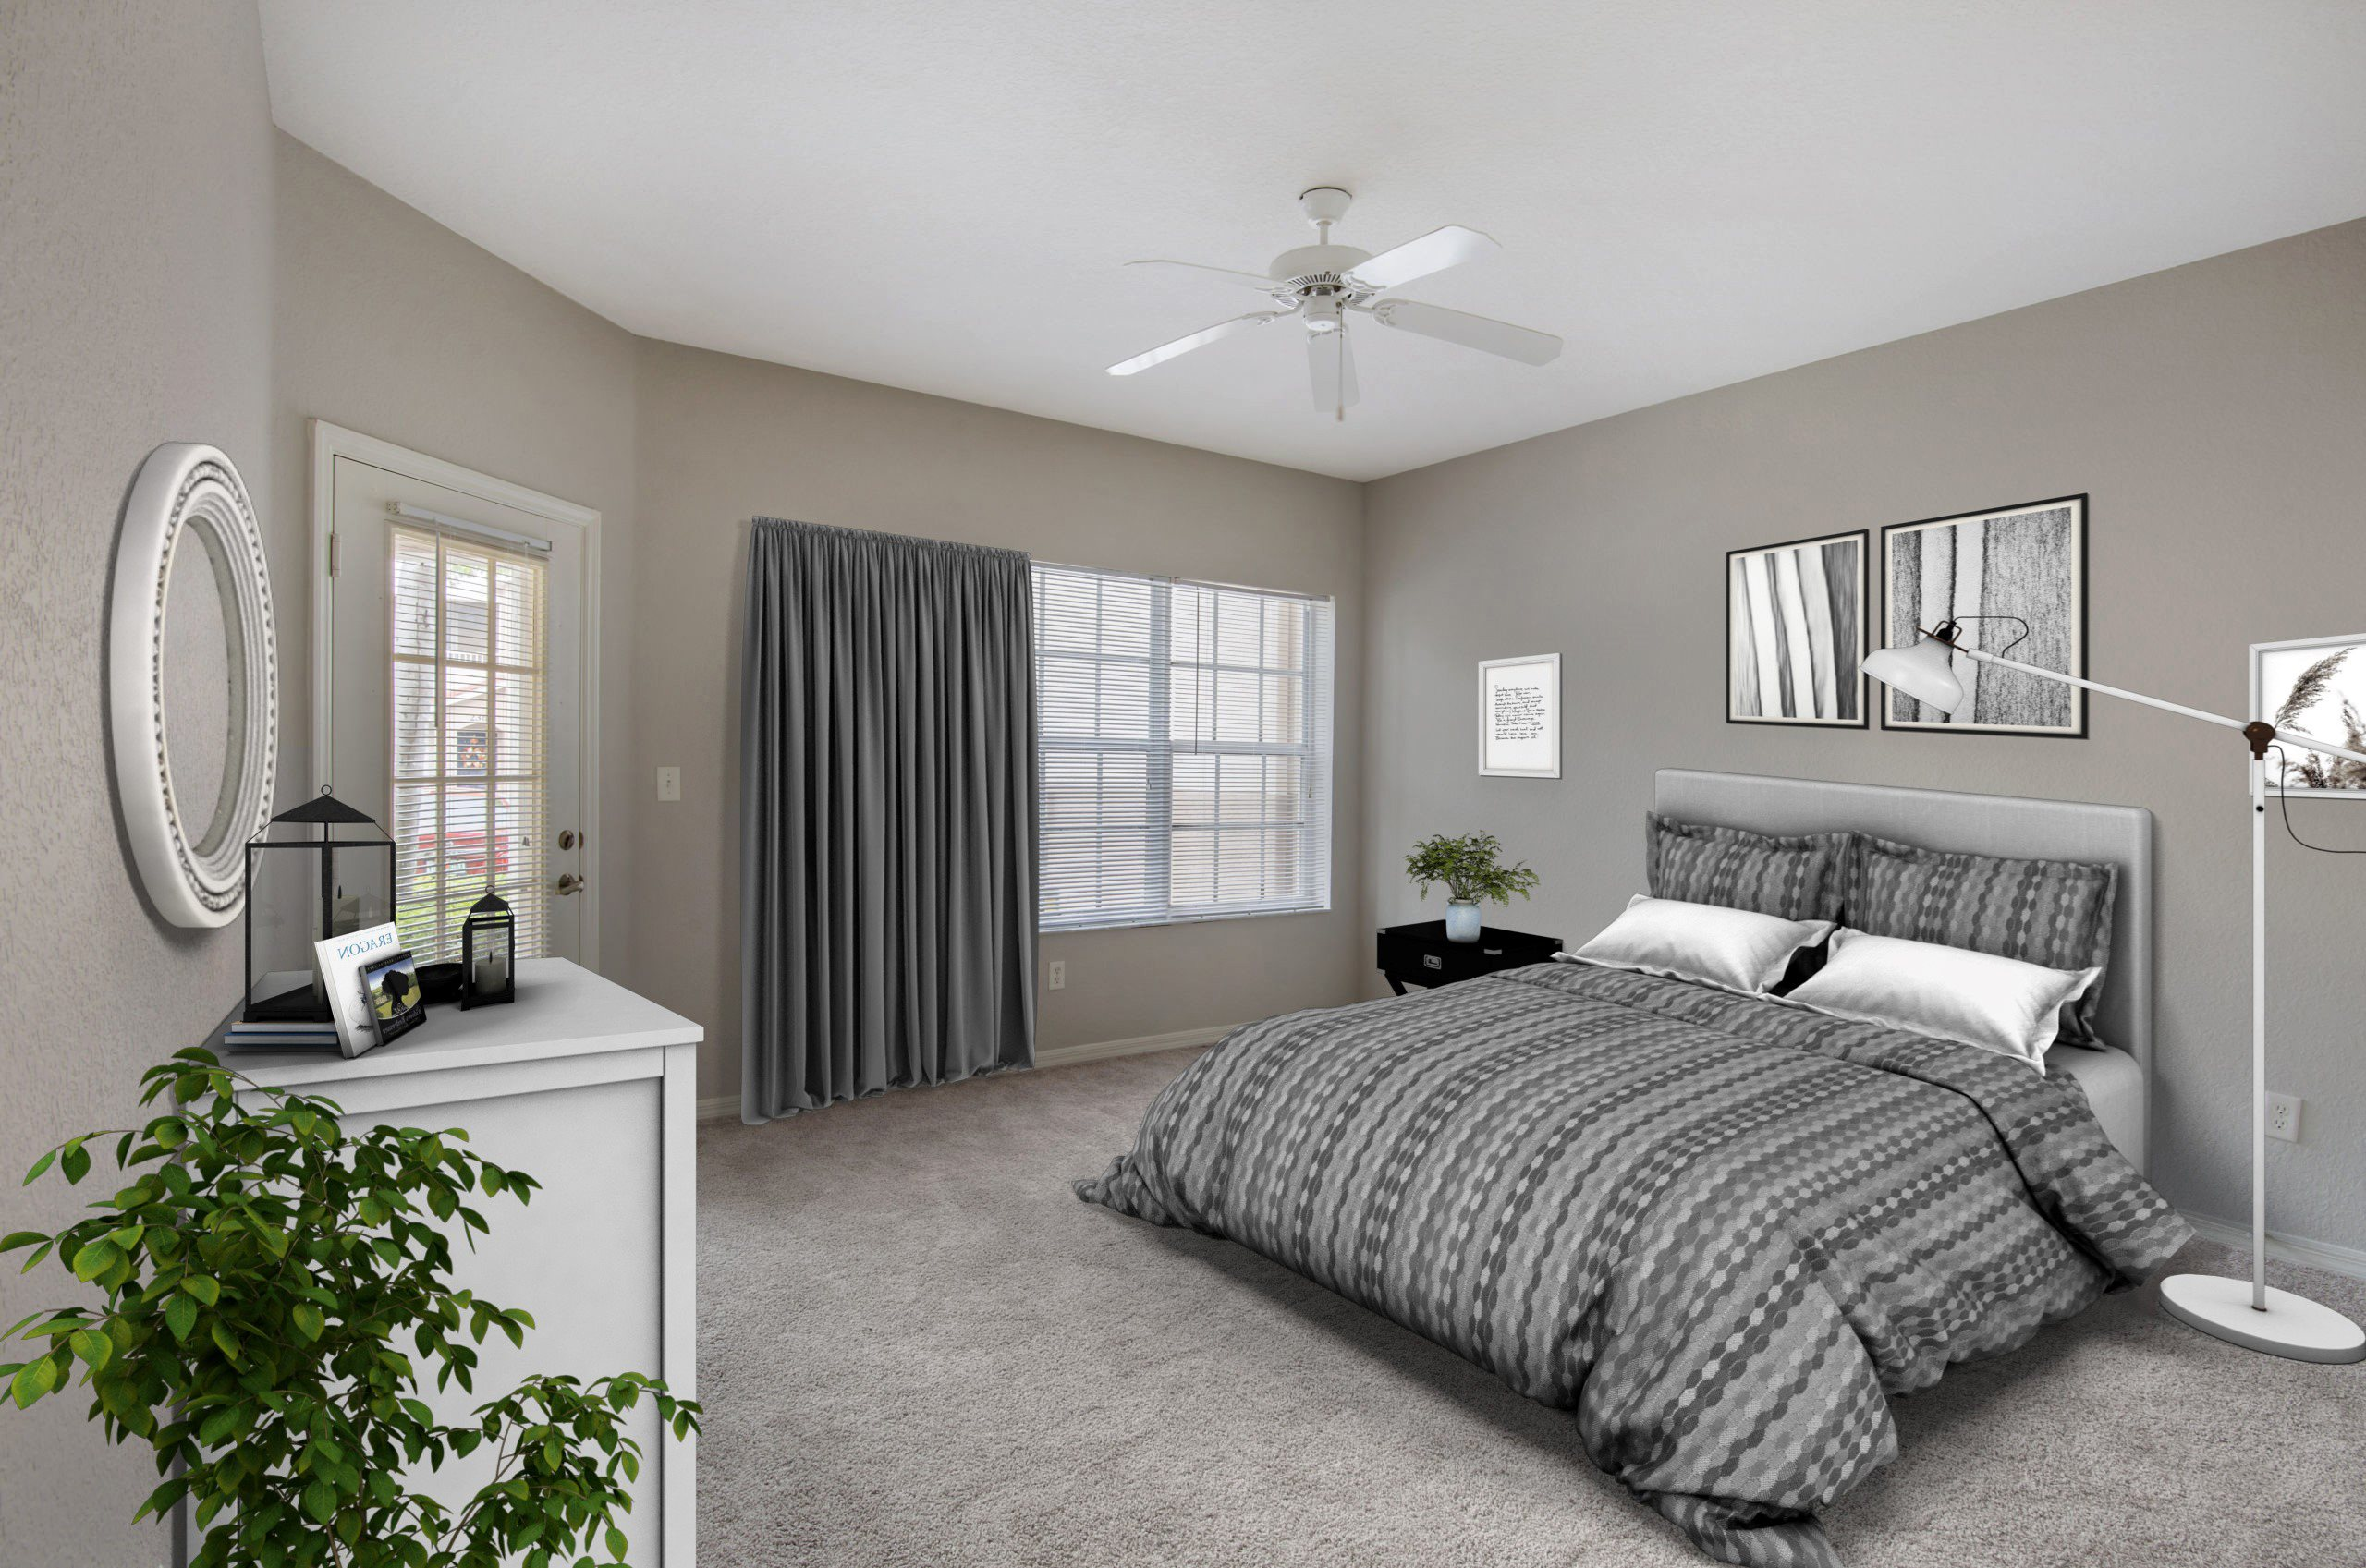 interior of bedroom with virtual furniture